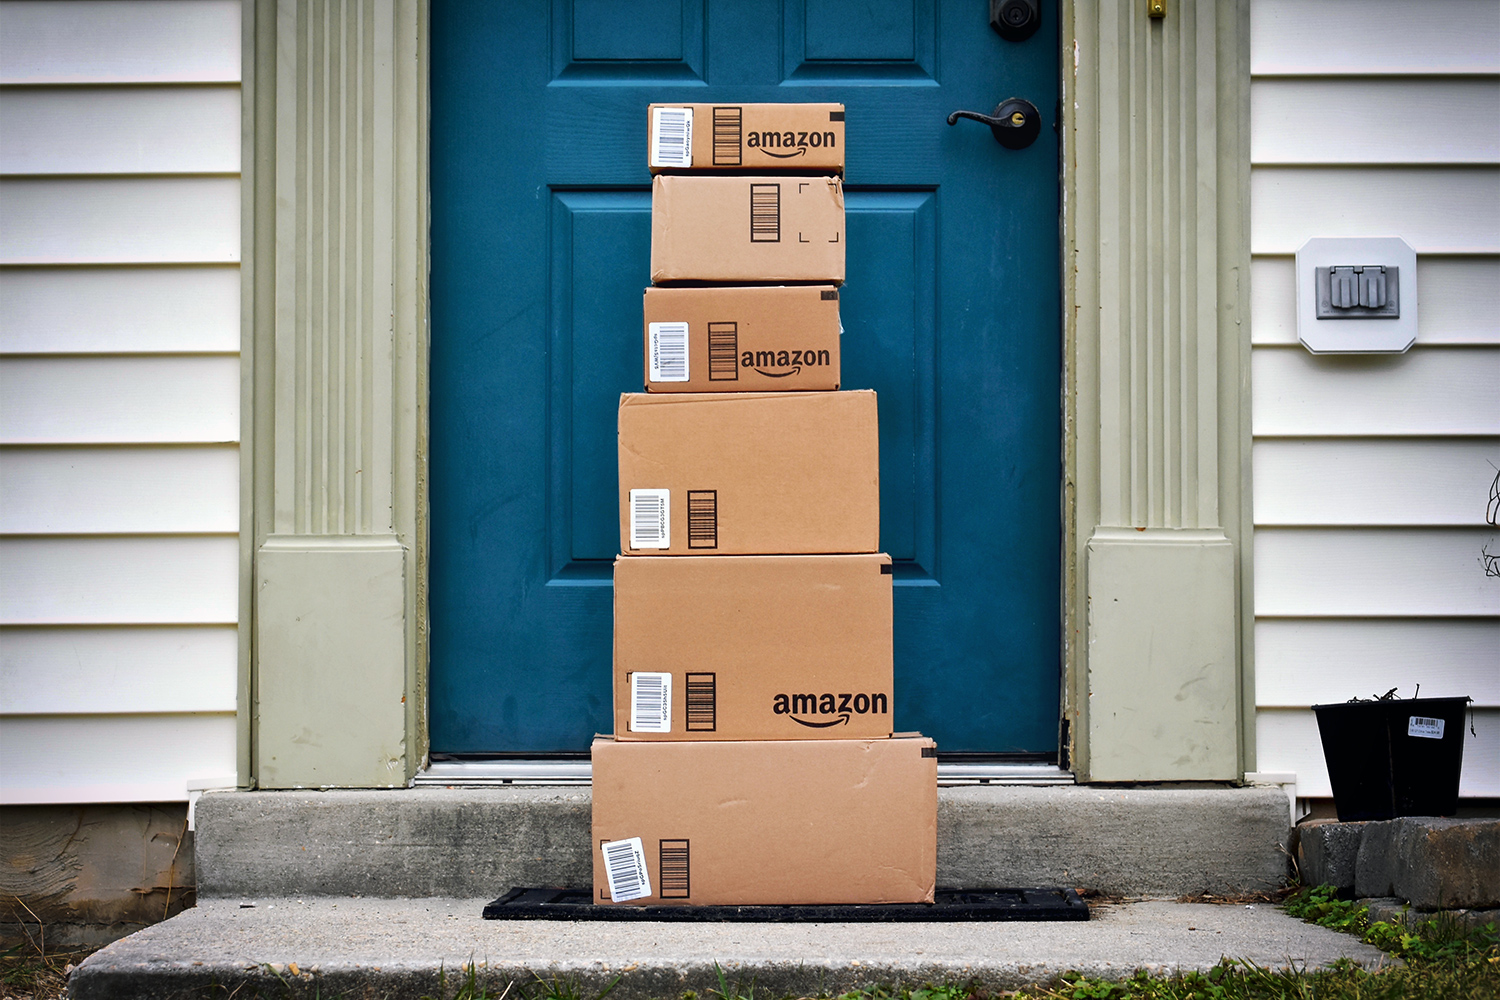 Protect Your Packages from Porch Pirates, How to Safely Travel in a Car, Preplan for a Safe Vacation - Safety Tips While Traveling, ome Security Mistakes, Point Loma Locksmith, pro locksmith, pro locksmith san diego, pro locksmiths, lock smith san diego, locksmiths san diego, locksmith san diego, Locksmith, Locksmith near me, san diego locksmith, san diego locksmiths, ring doorbell installation, auto locksmith san diego, san diego auto locksmith, car locksmith san diego, locksmith el cajon, locksmith chula vista, cheap locksmith, 24 hour car locksmith, auto locksmith, Lock repair, commercial locksmith, lock out services, emergency locksmith, emergency locksmith services